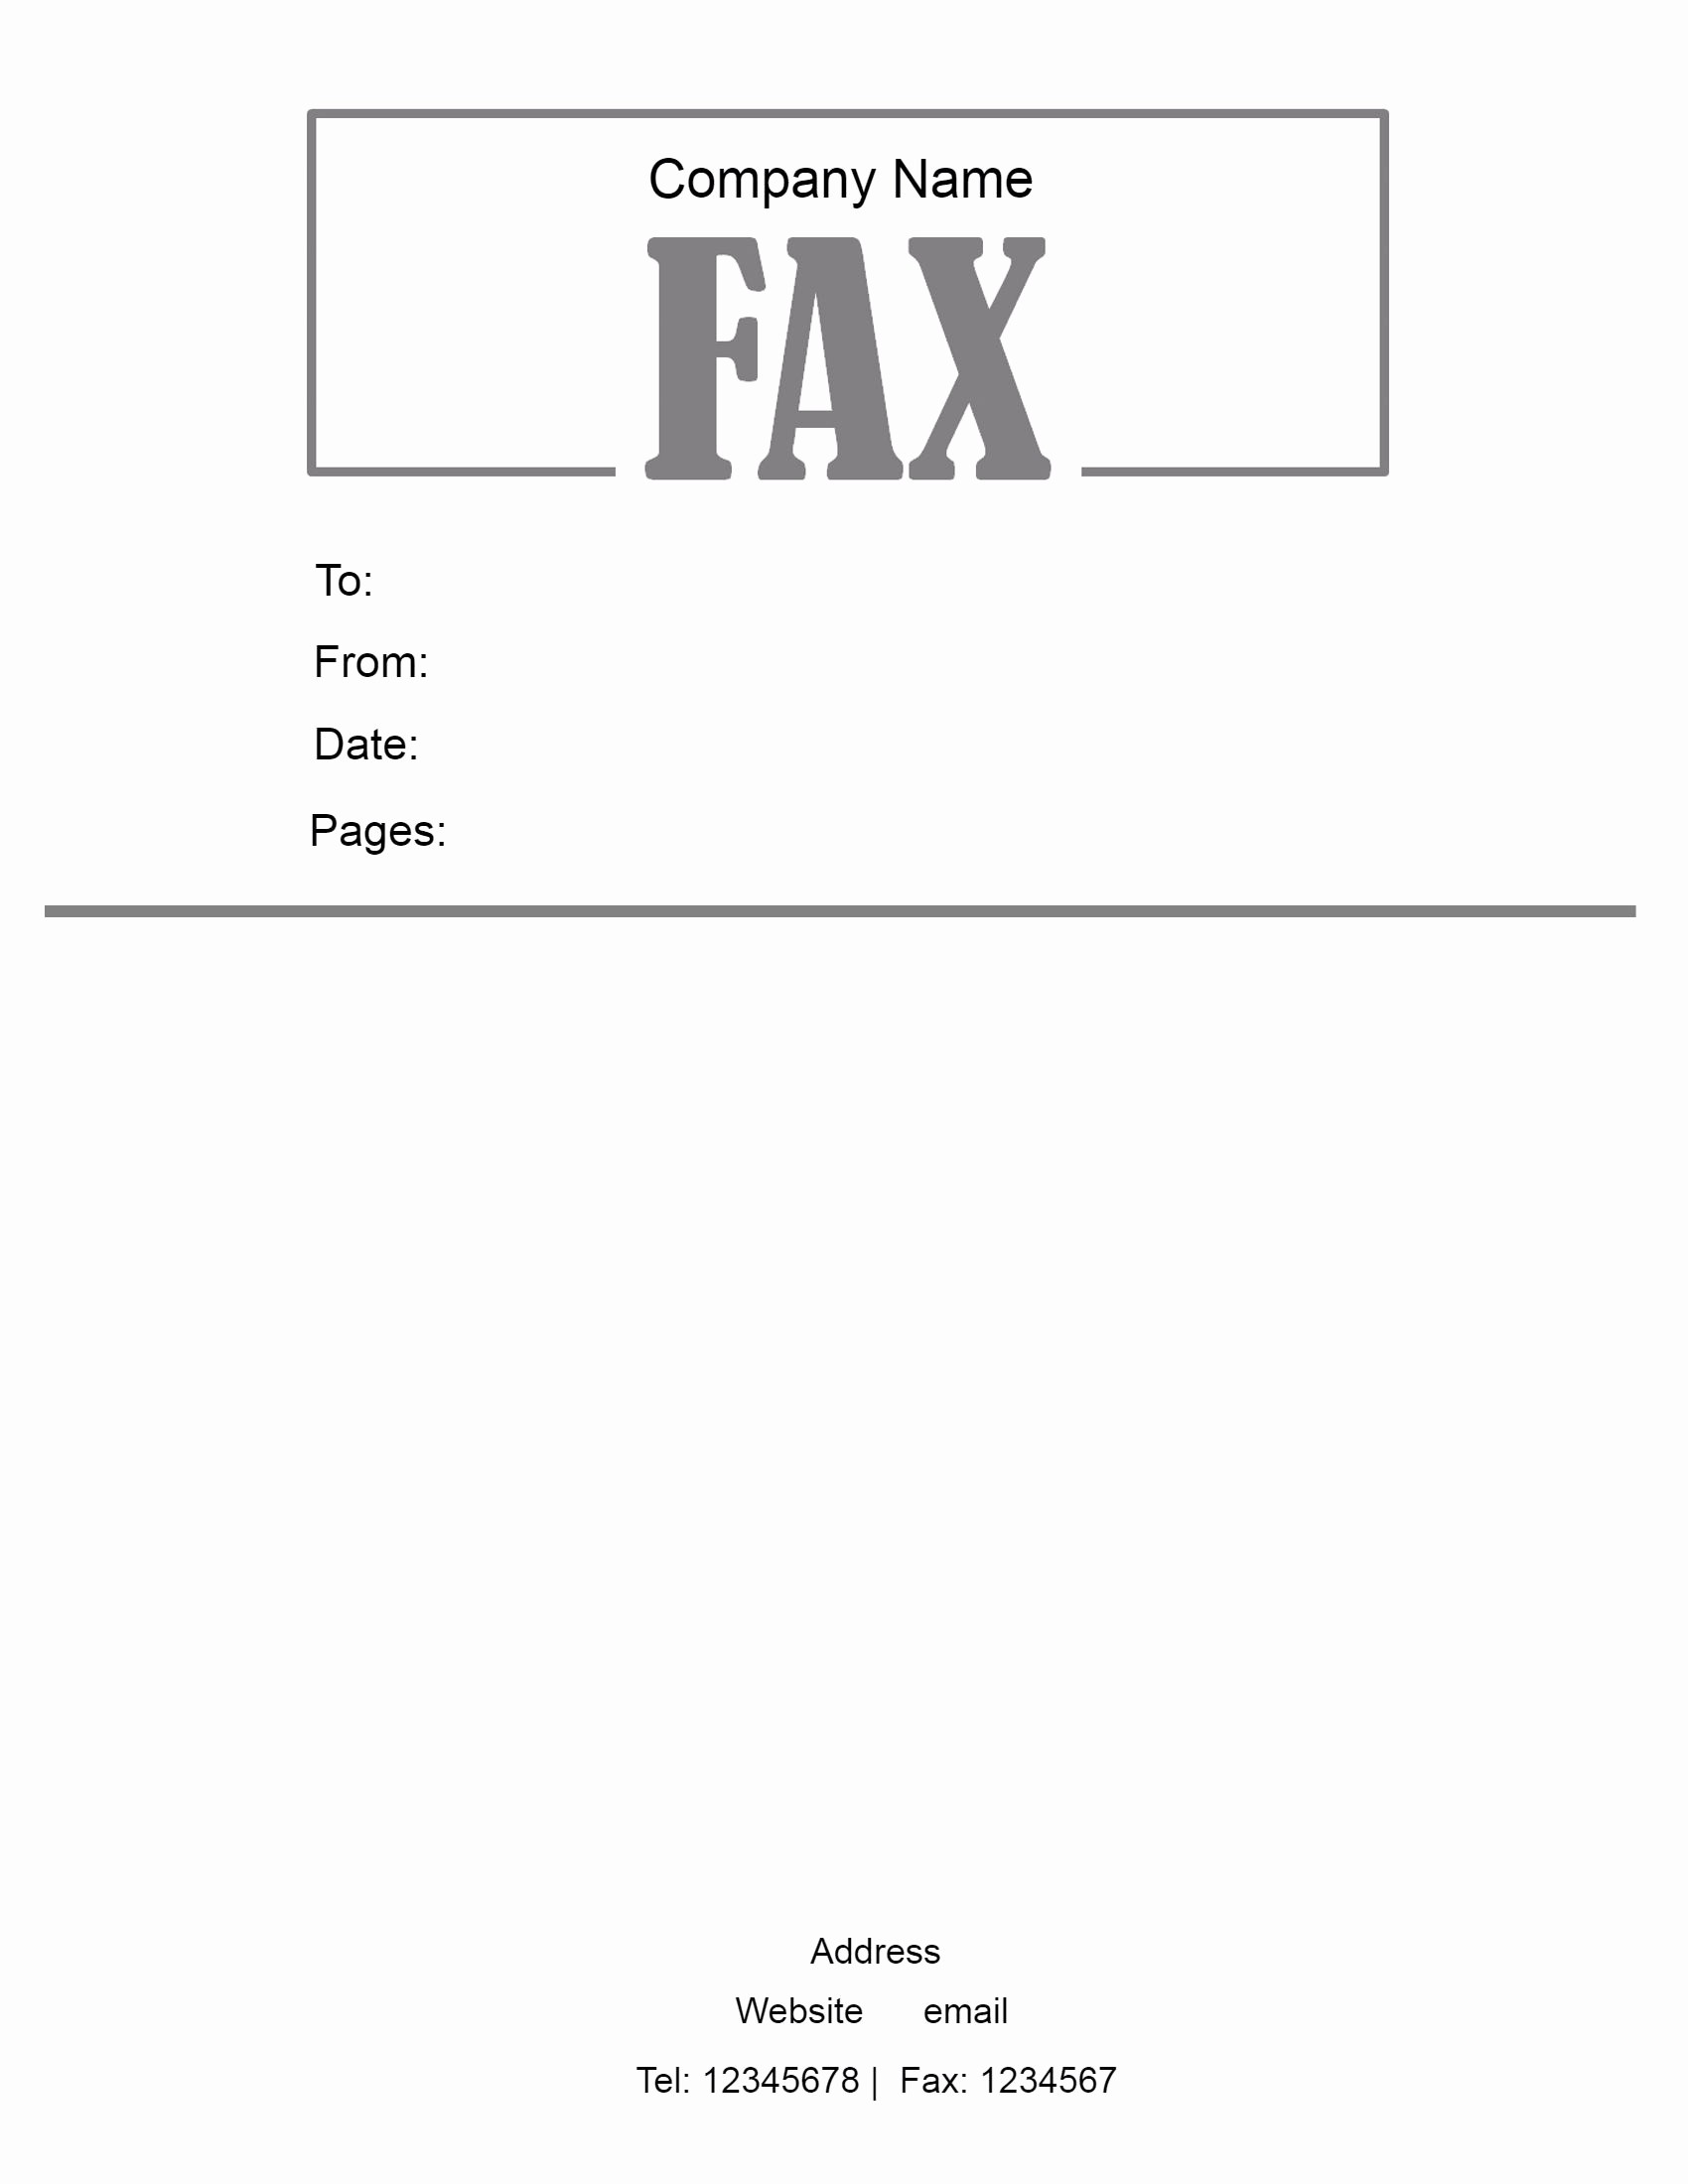 Fax Cover Sheet Sample Pdf Best Of Free Fax Cover Letter Template